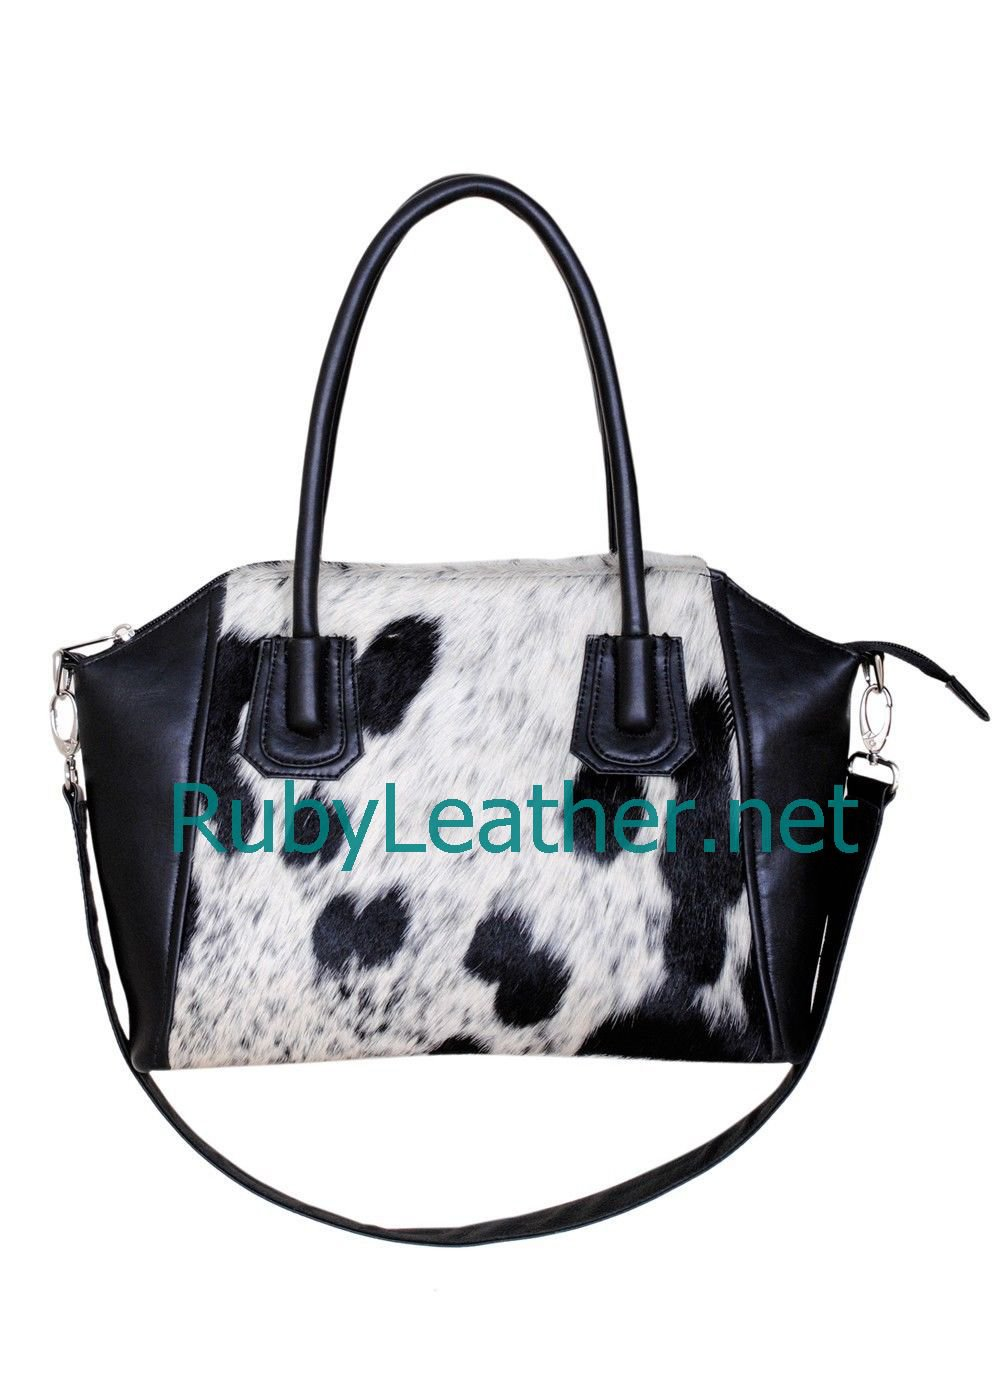 New cowhide leather handbag Free Shipping to Australia & NewZealand